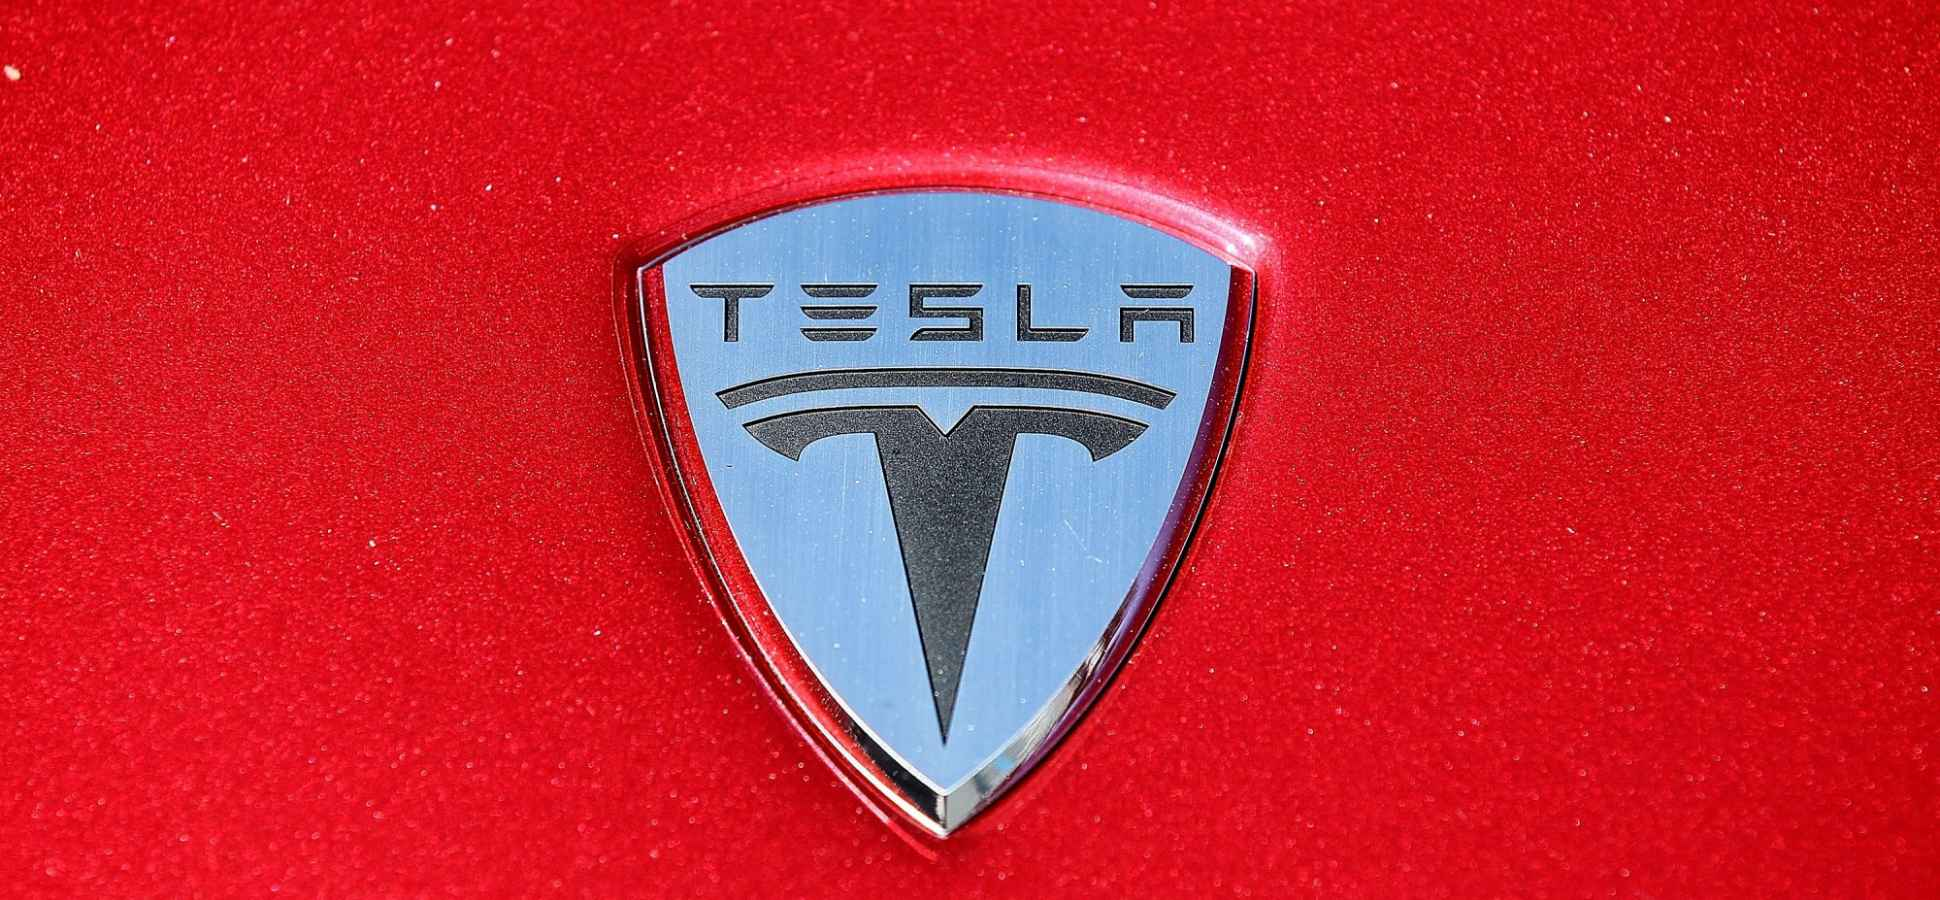 Tesla Could Soon Gain a 'Near-Monopolistic' Hold on the Electric Car Market